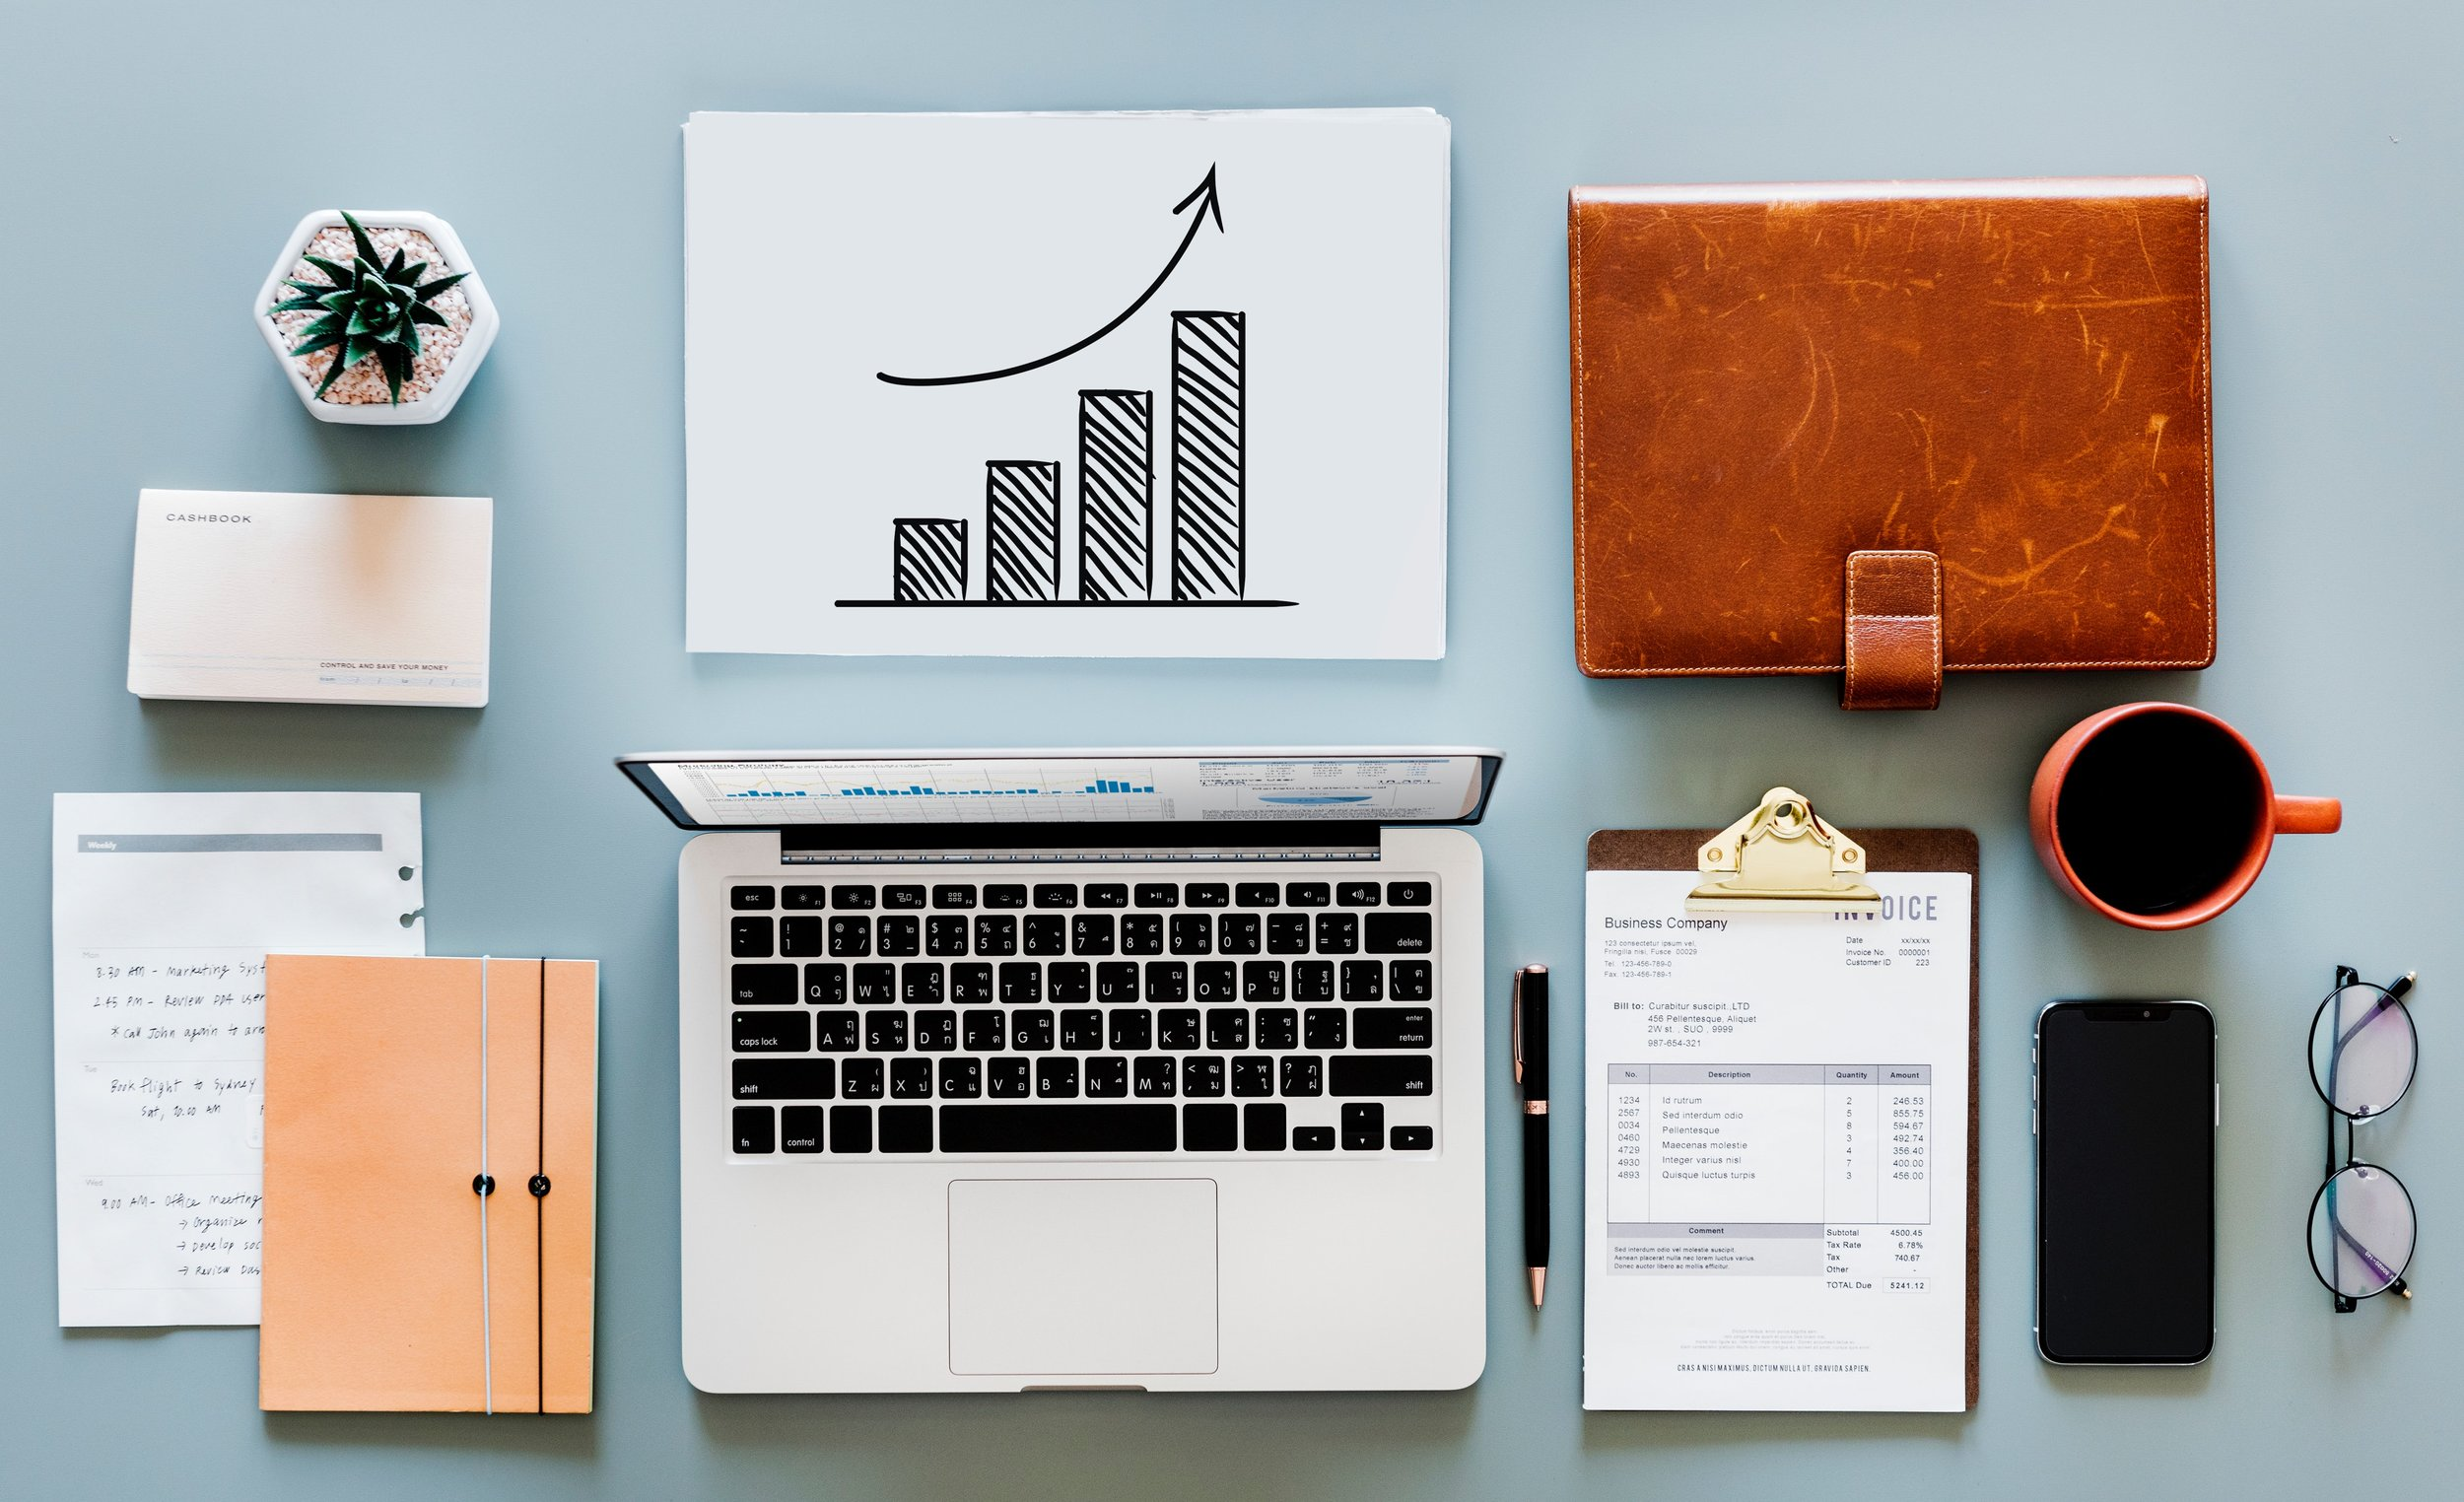 DIGITAL MARKETING HACKS FOR 2019 - Kickstart your 2019 marketing strategy planning with our exclusive 6-part series